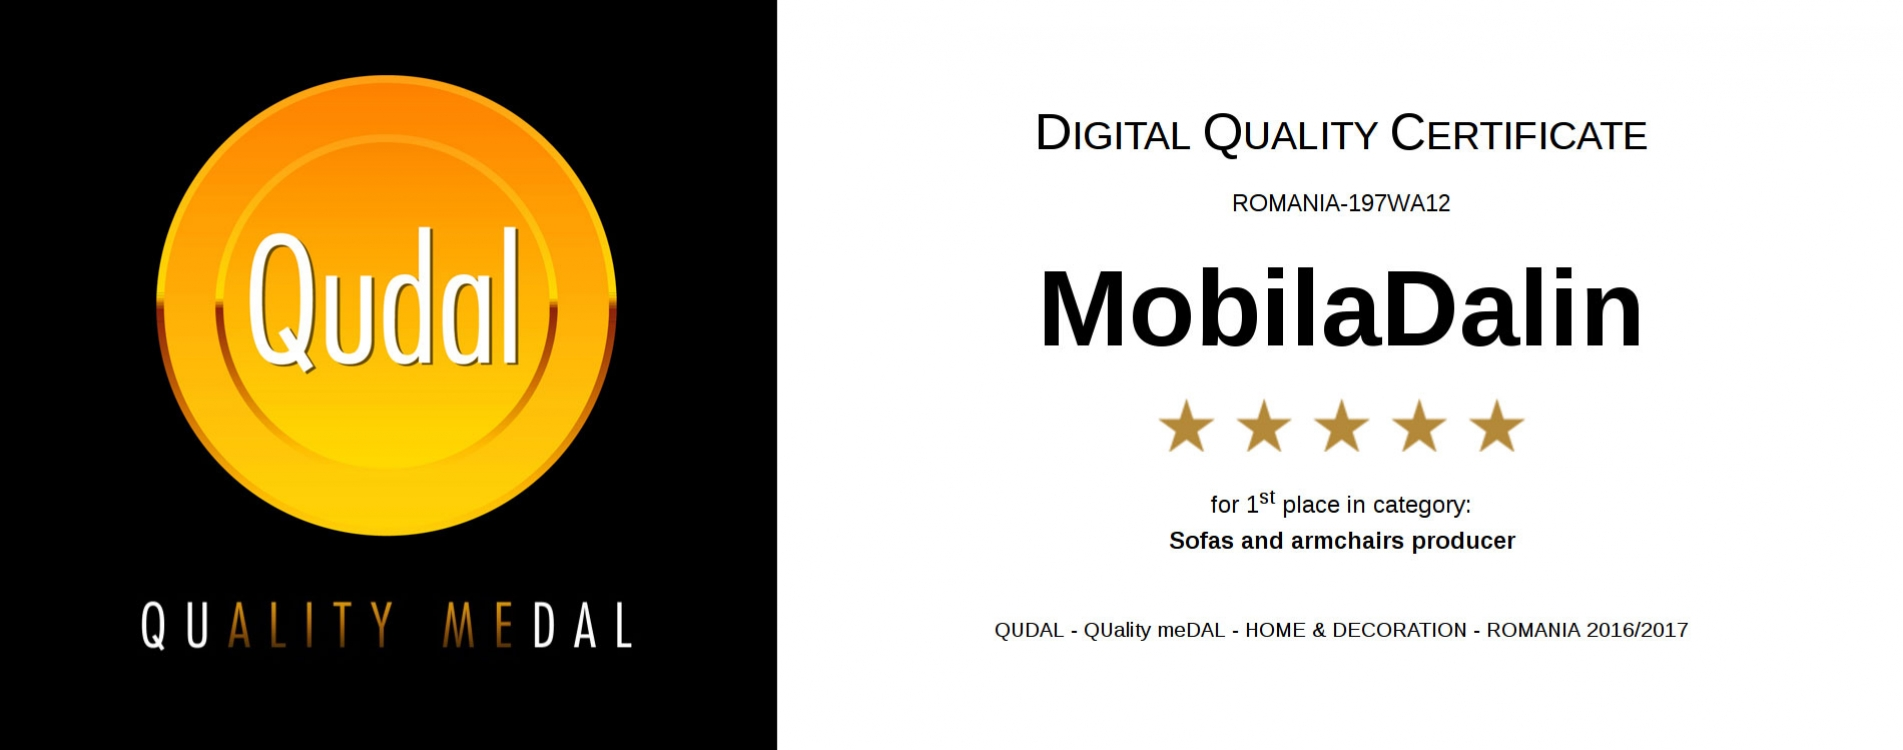 DIGITAL QUALITY CERTIFICATE